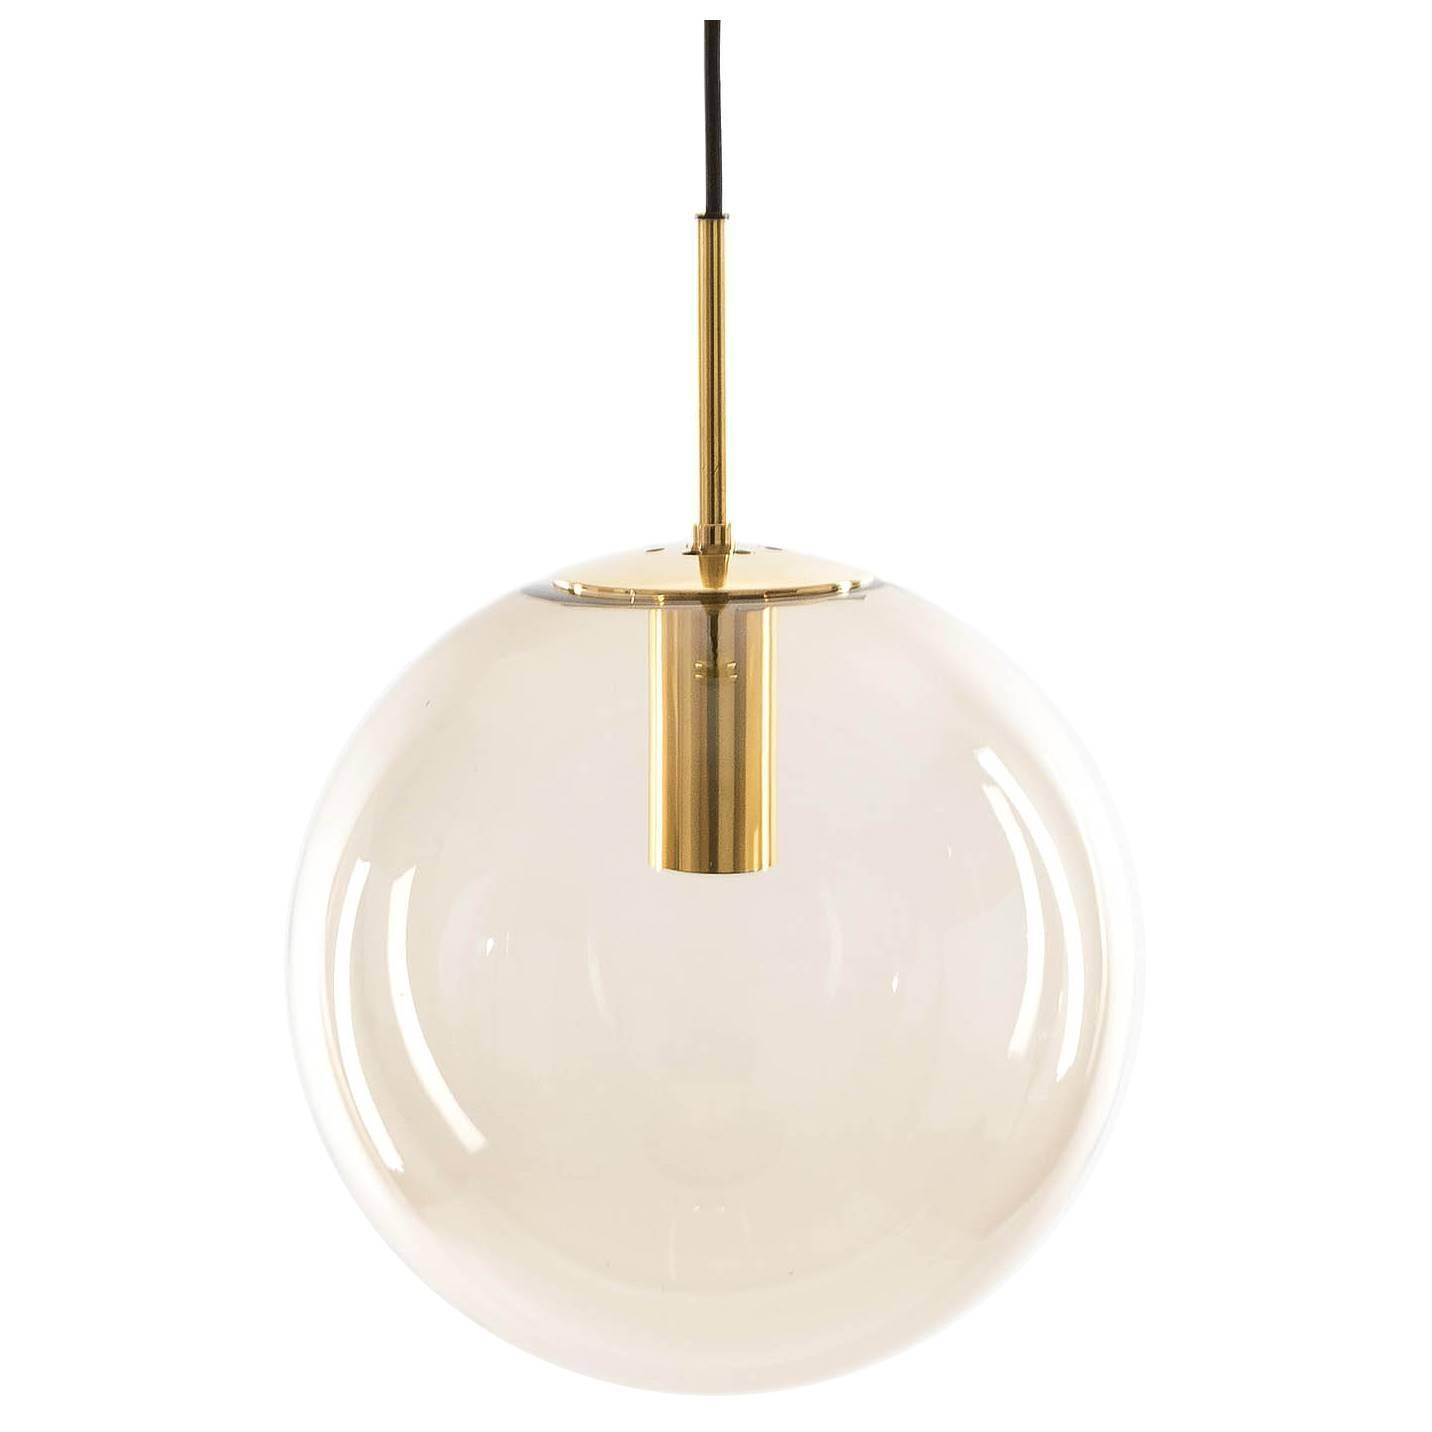 One Of Ten Limburg Globe Pendant Lights Brass And Smoked Glass For With Glass Ball Pendant Lights (View 14 of 15)